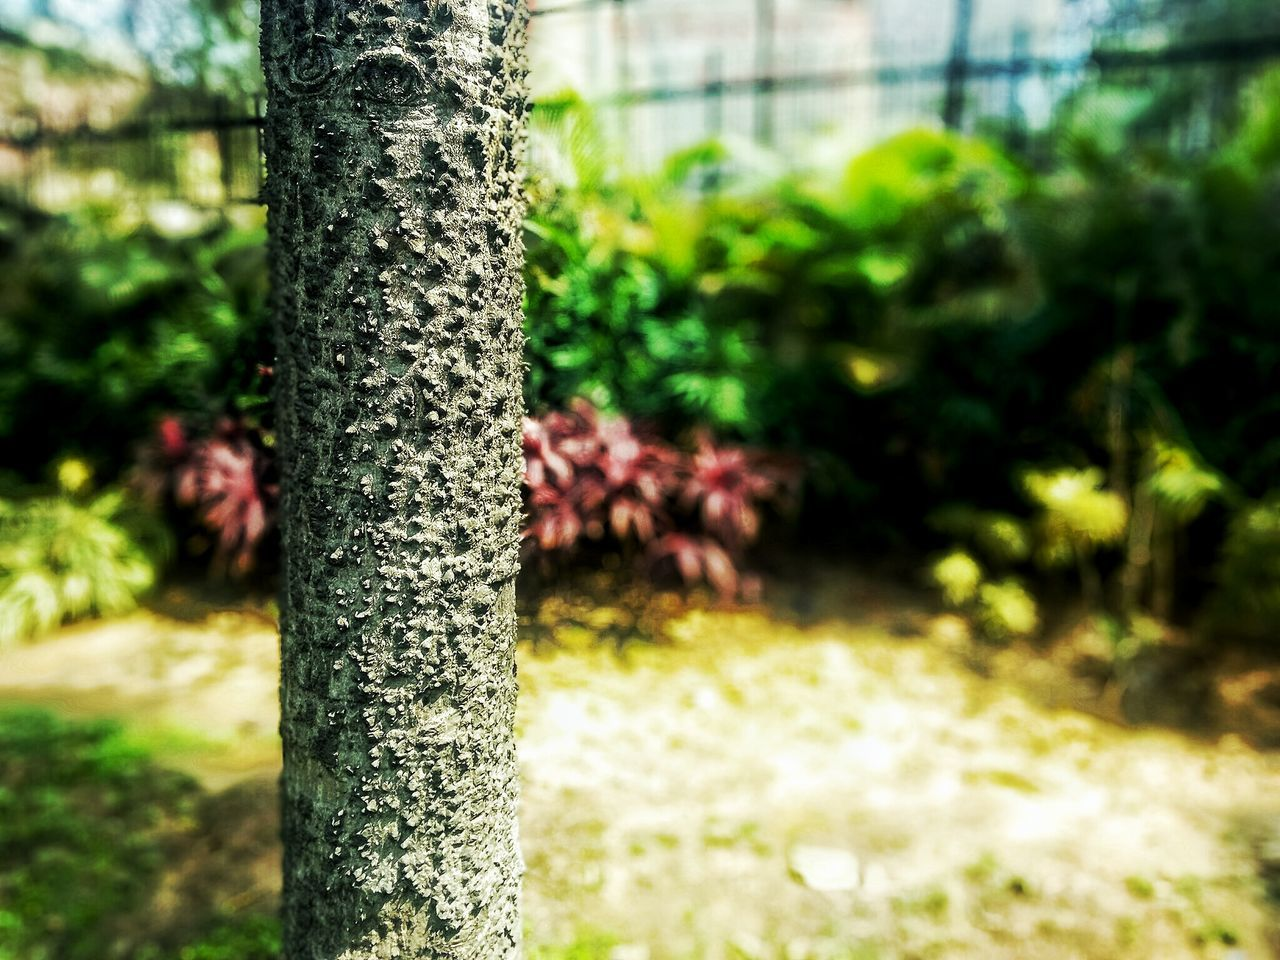 tree trunk, growth, tree, focus on foreground, nature, plant, day, no people, beauty in nature, outdoors, close-up, plant nursery, greenhouse